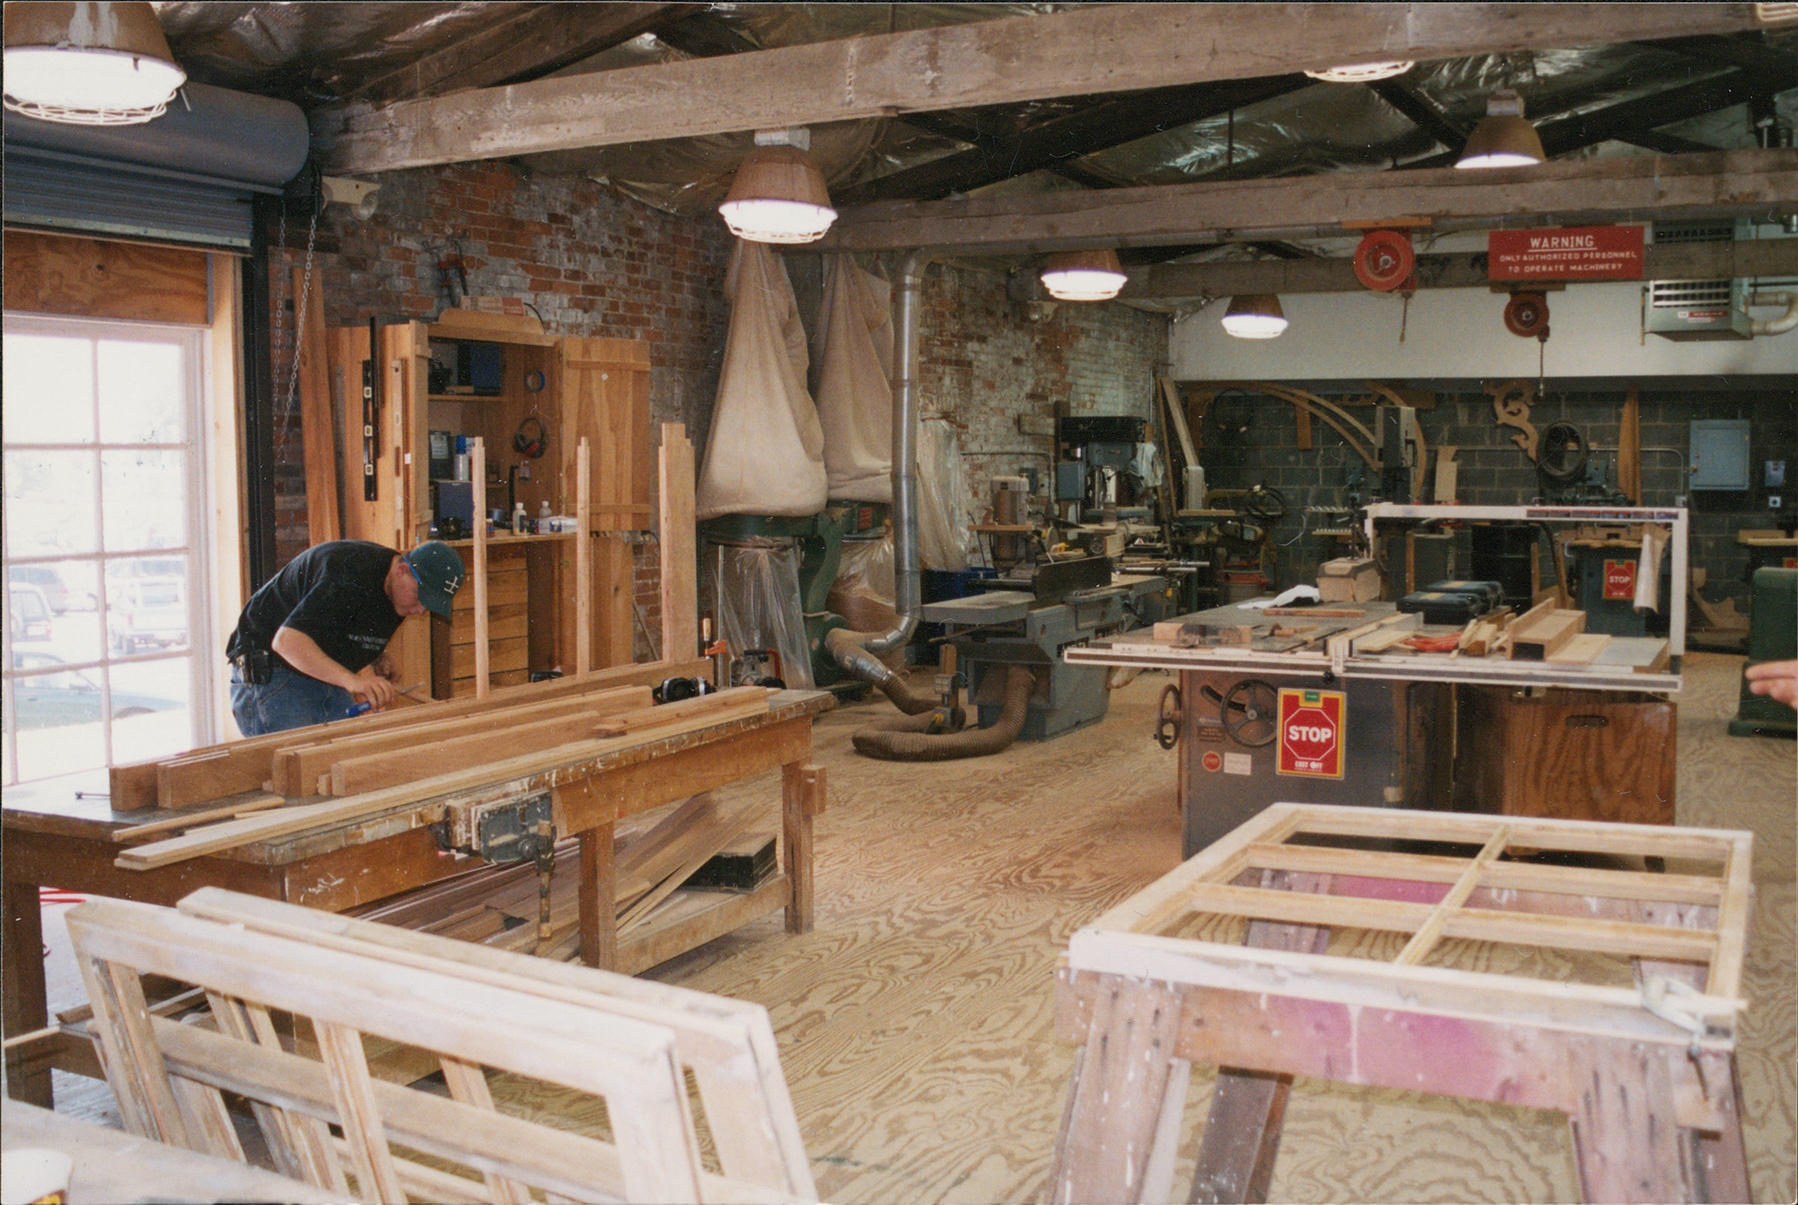 A view of preservation workers inside the National Park Service's Historic Preservation Training Center.